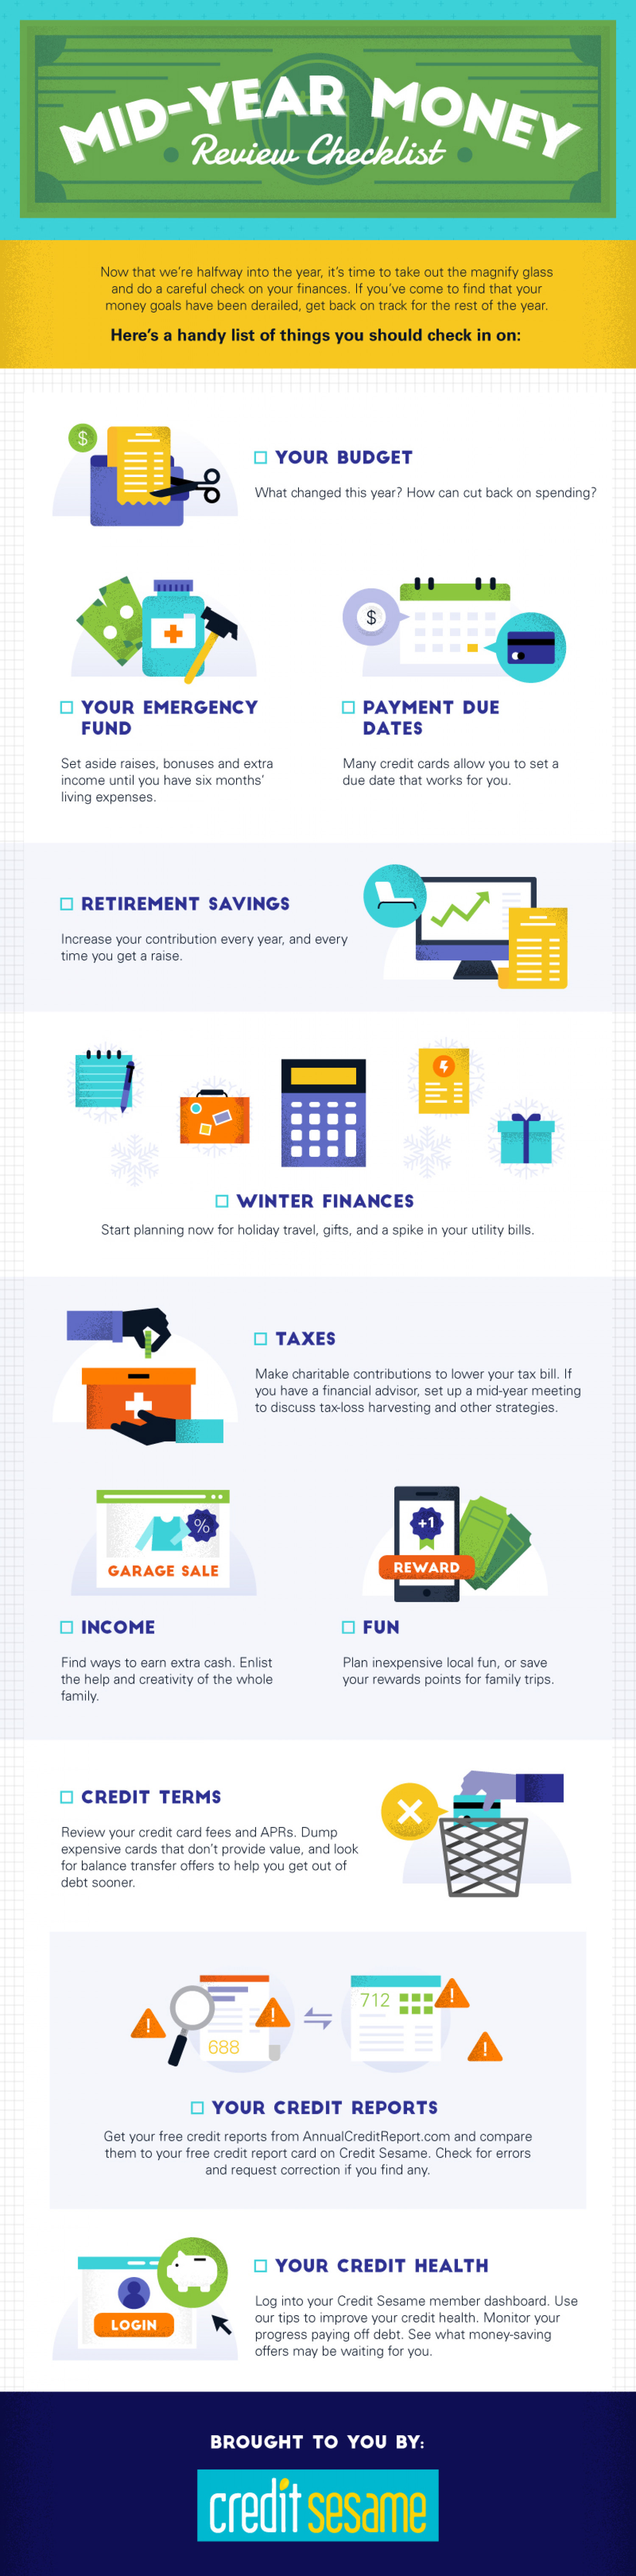 Mid-Year Money Review Checklist Infographic